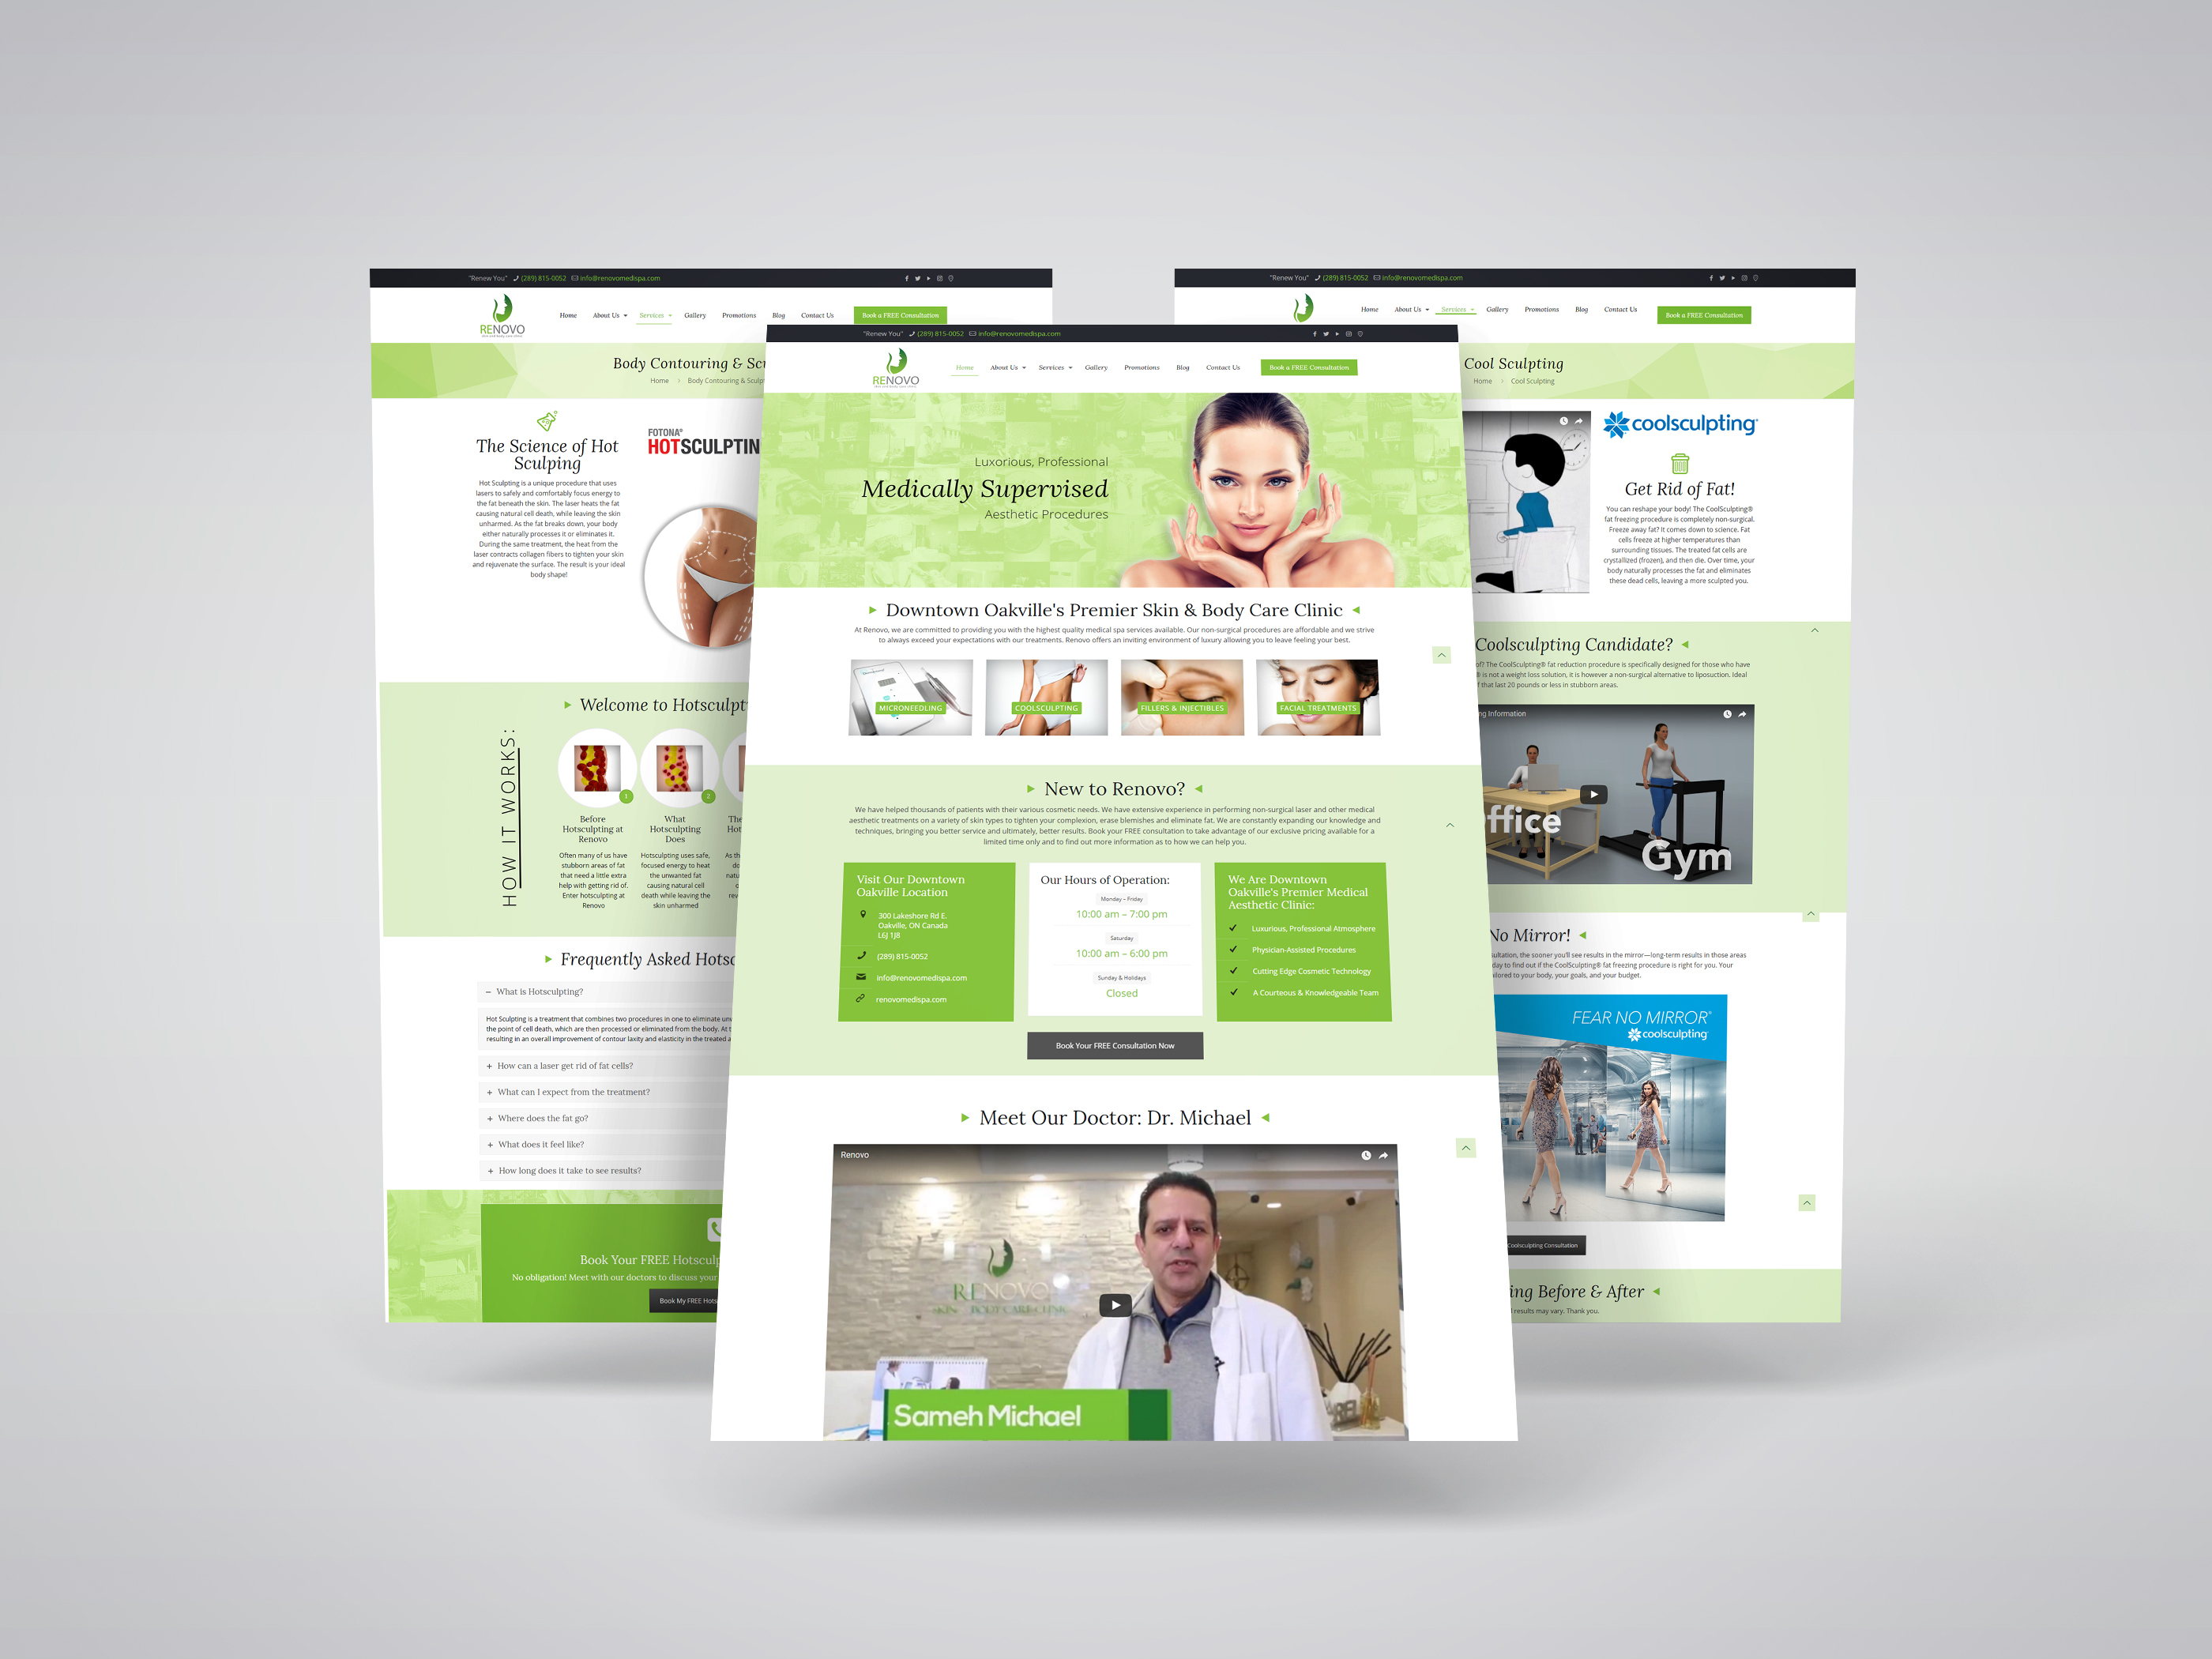 Medi Spa Website Design for Renovo Medi Spa, an Oakville-based medi spa